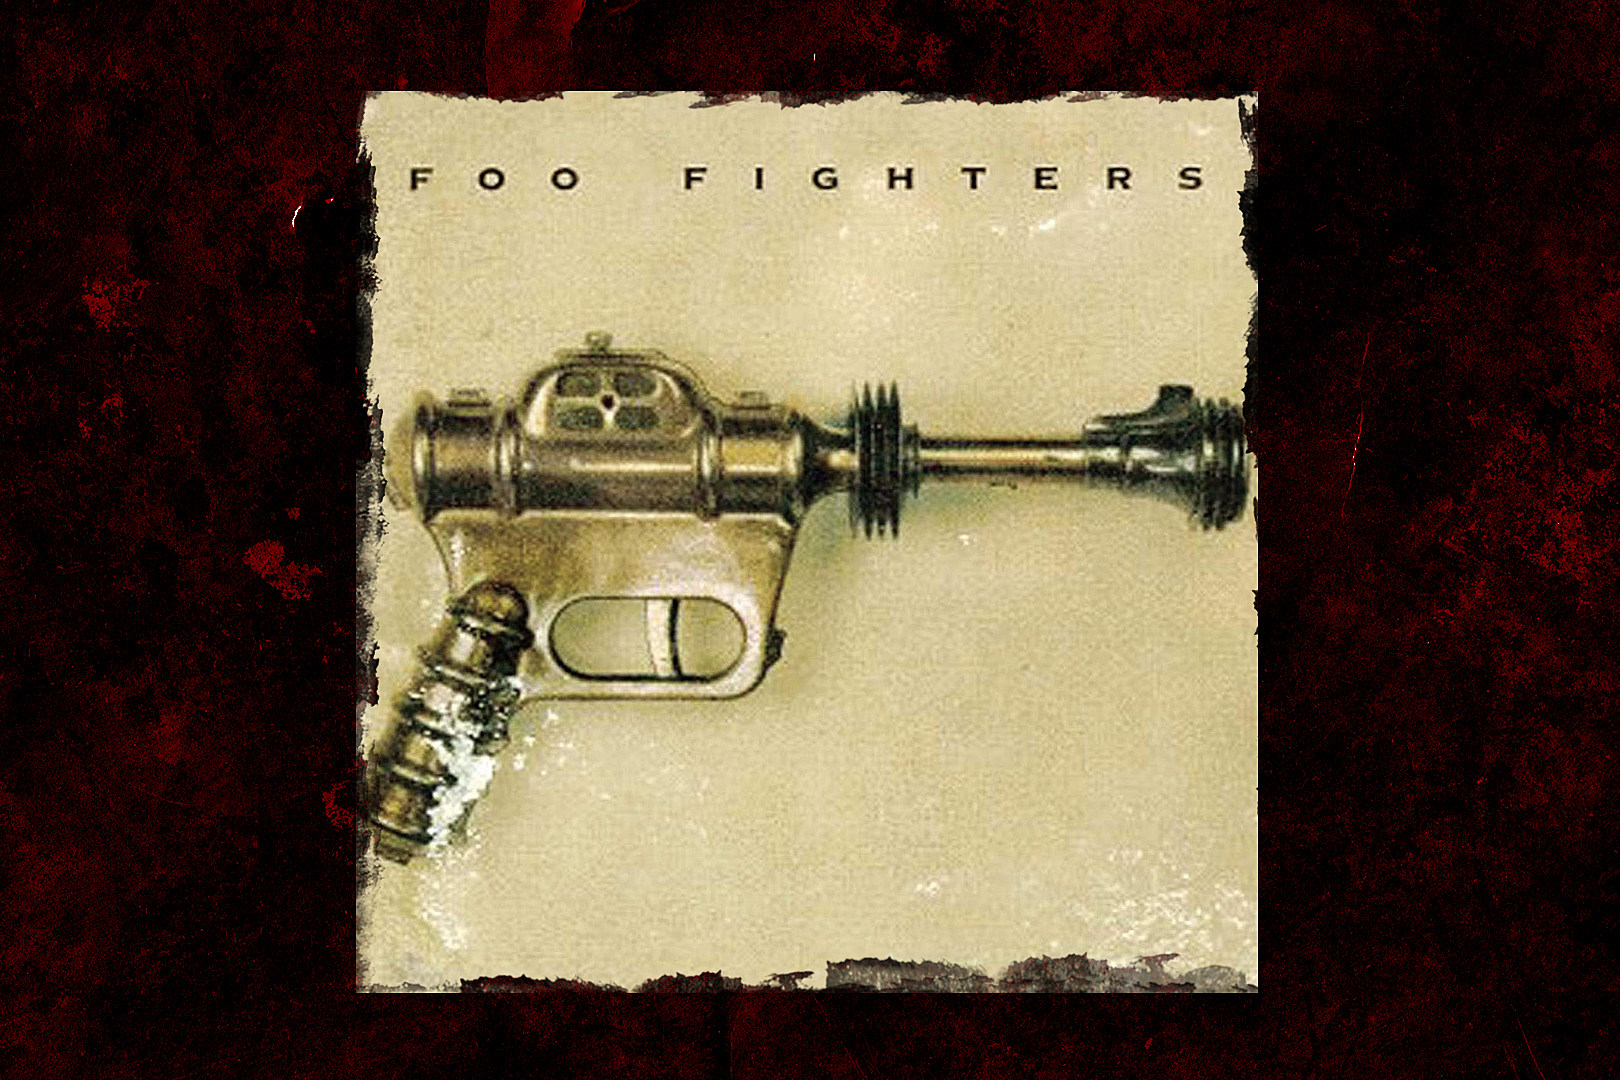 25 Years Ago: Foo Fighters Emerge With Debut Album